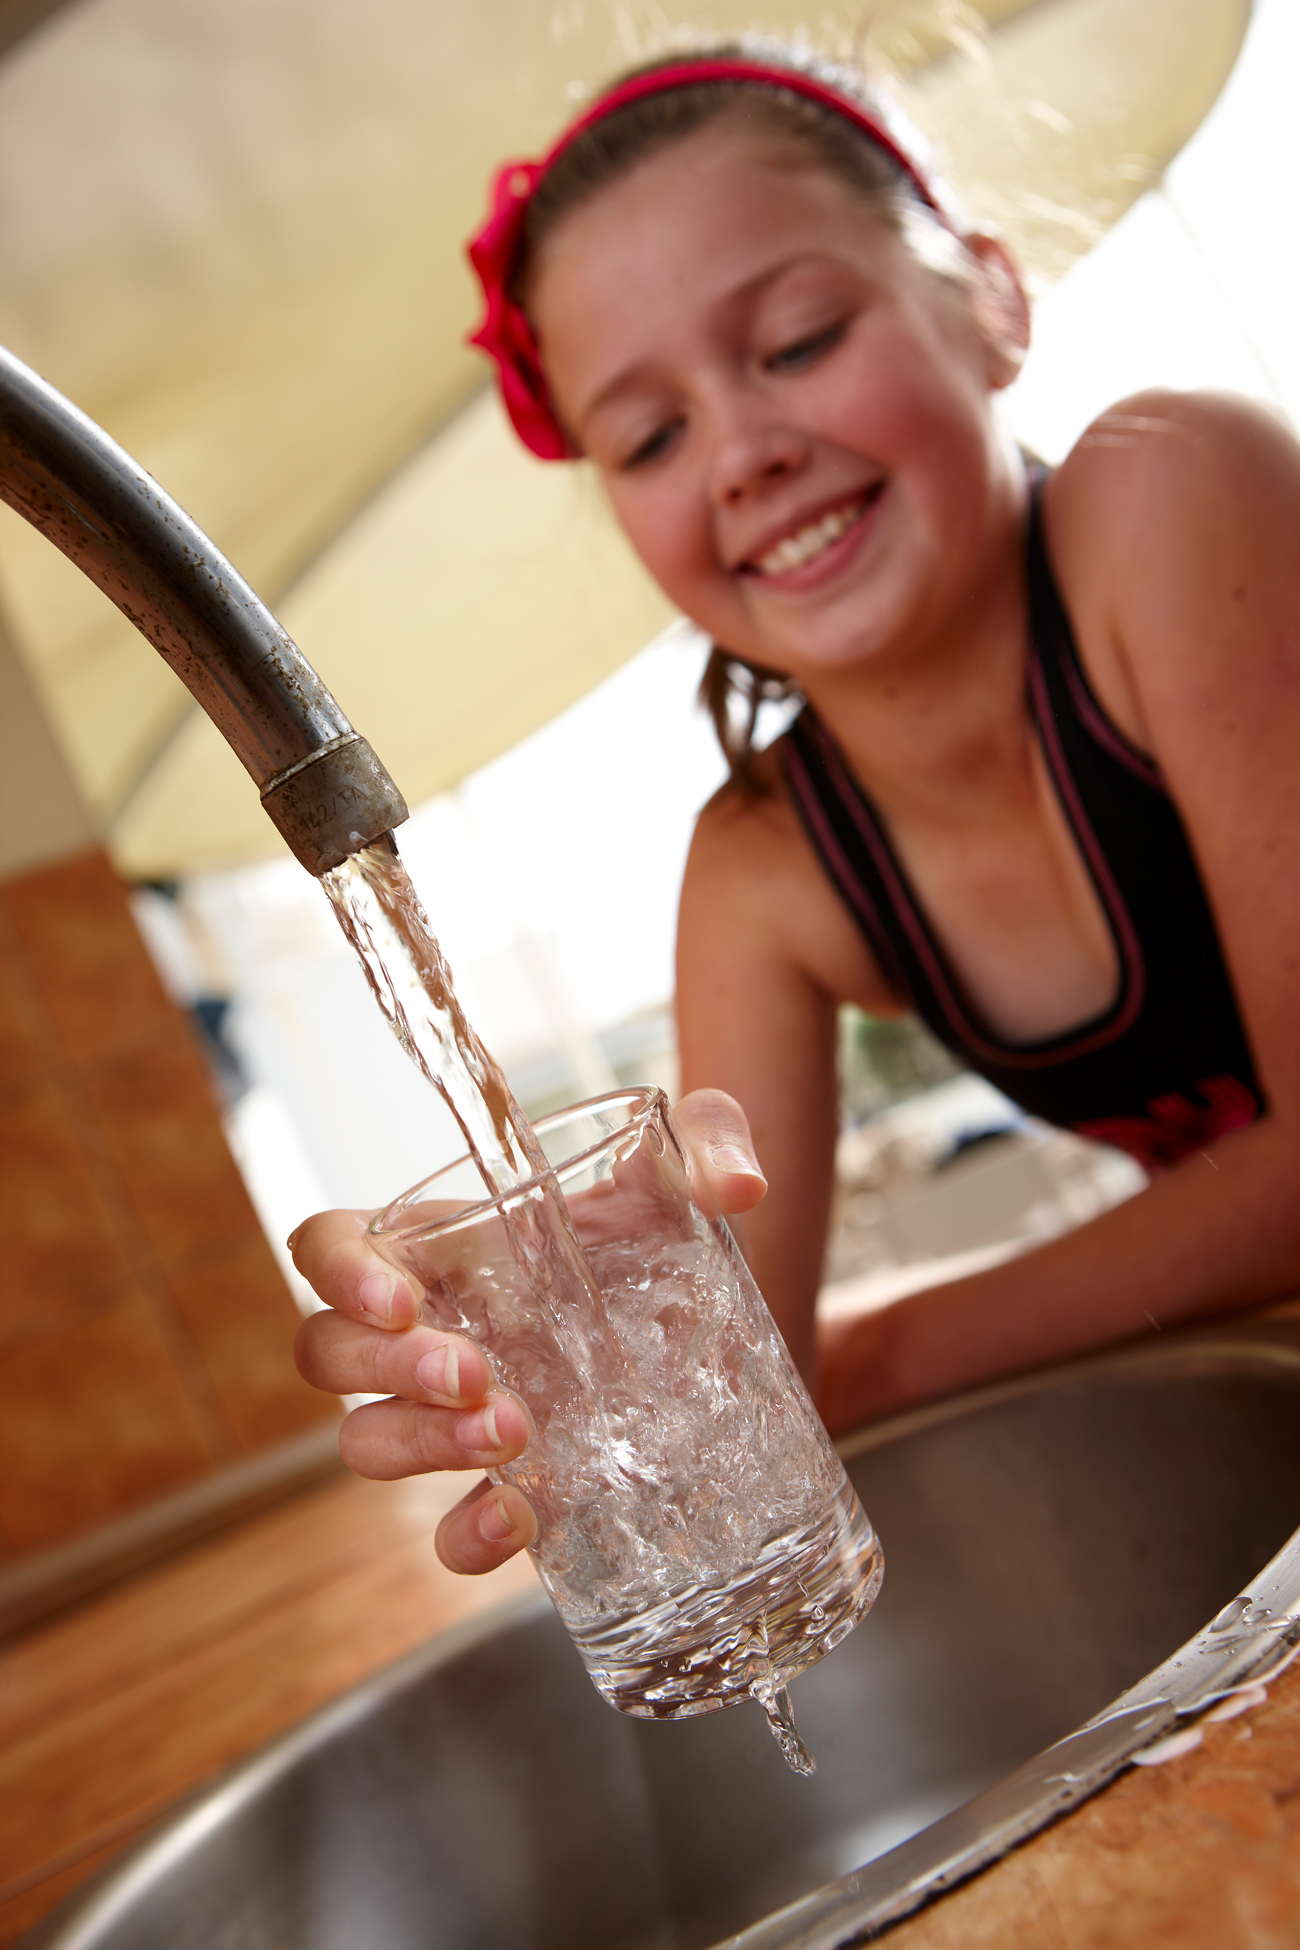 Girl filling glass of water from tap